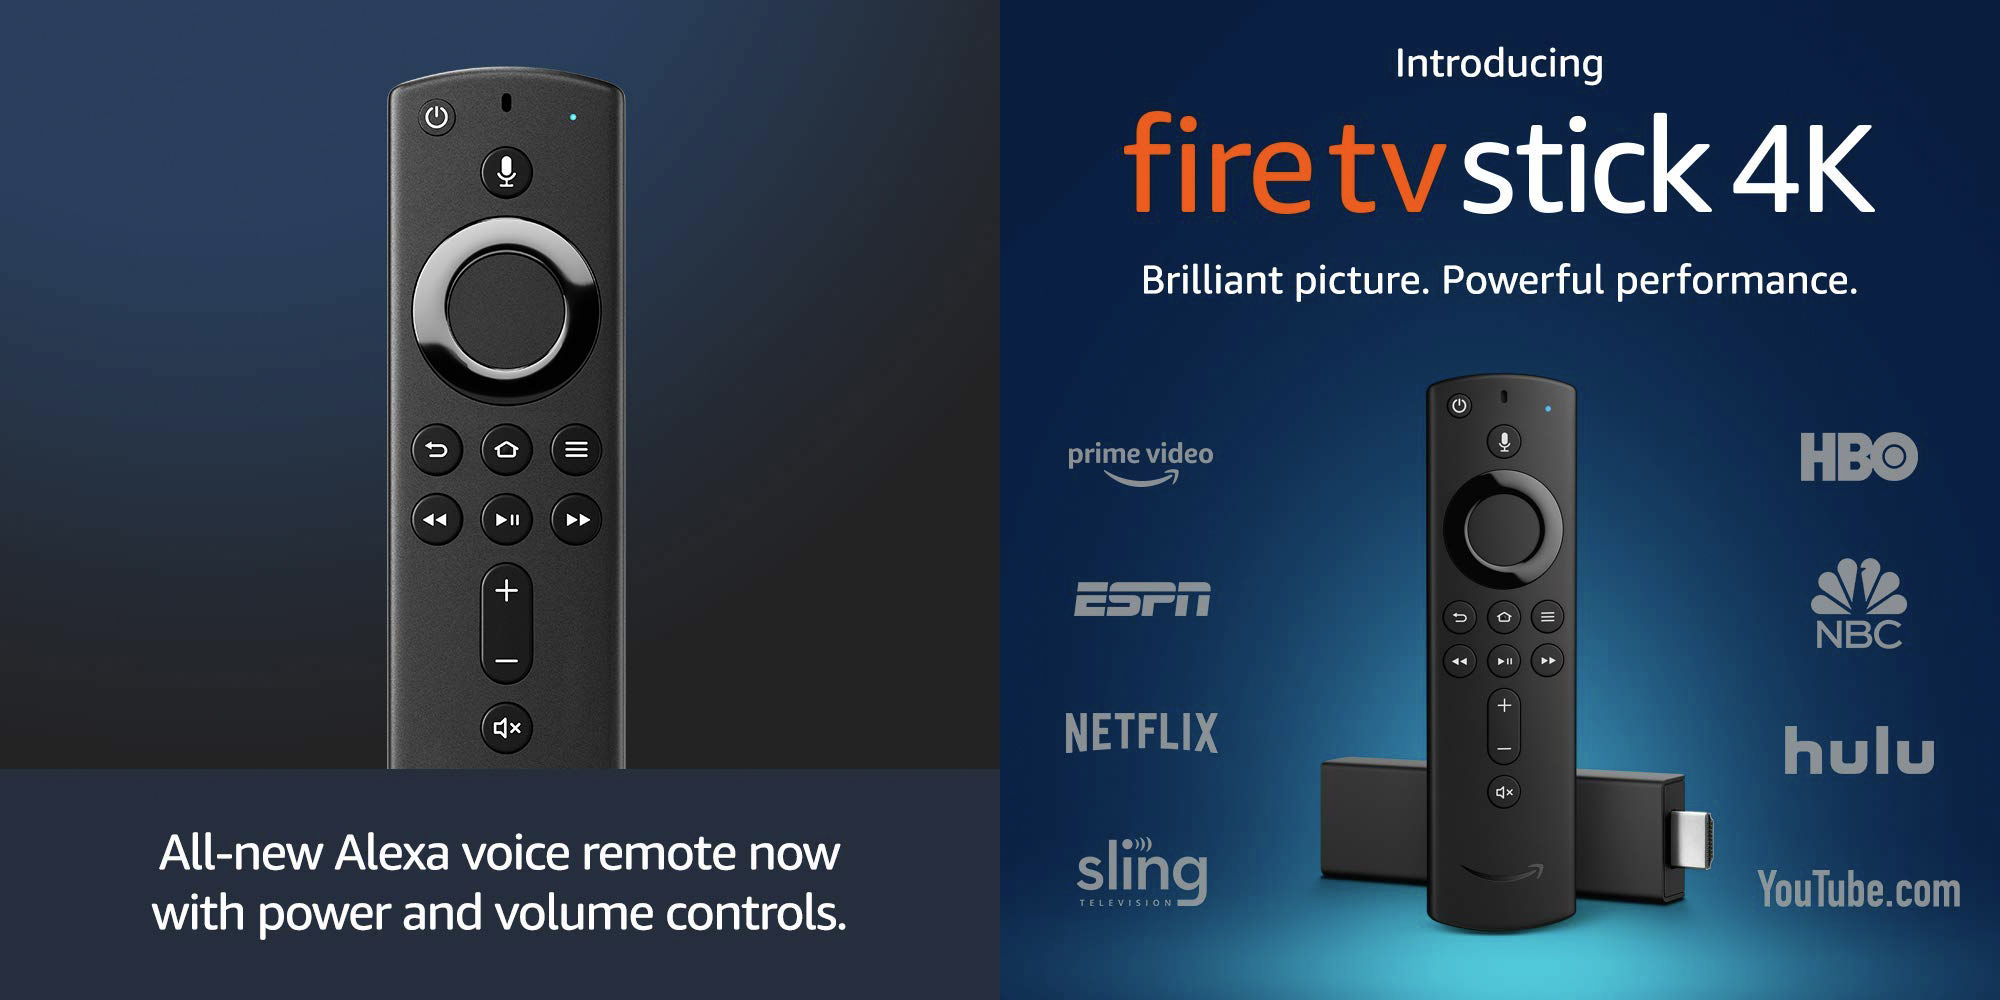 Amazon Fire TV Stick 4K features